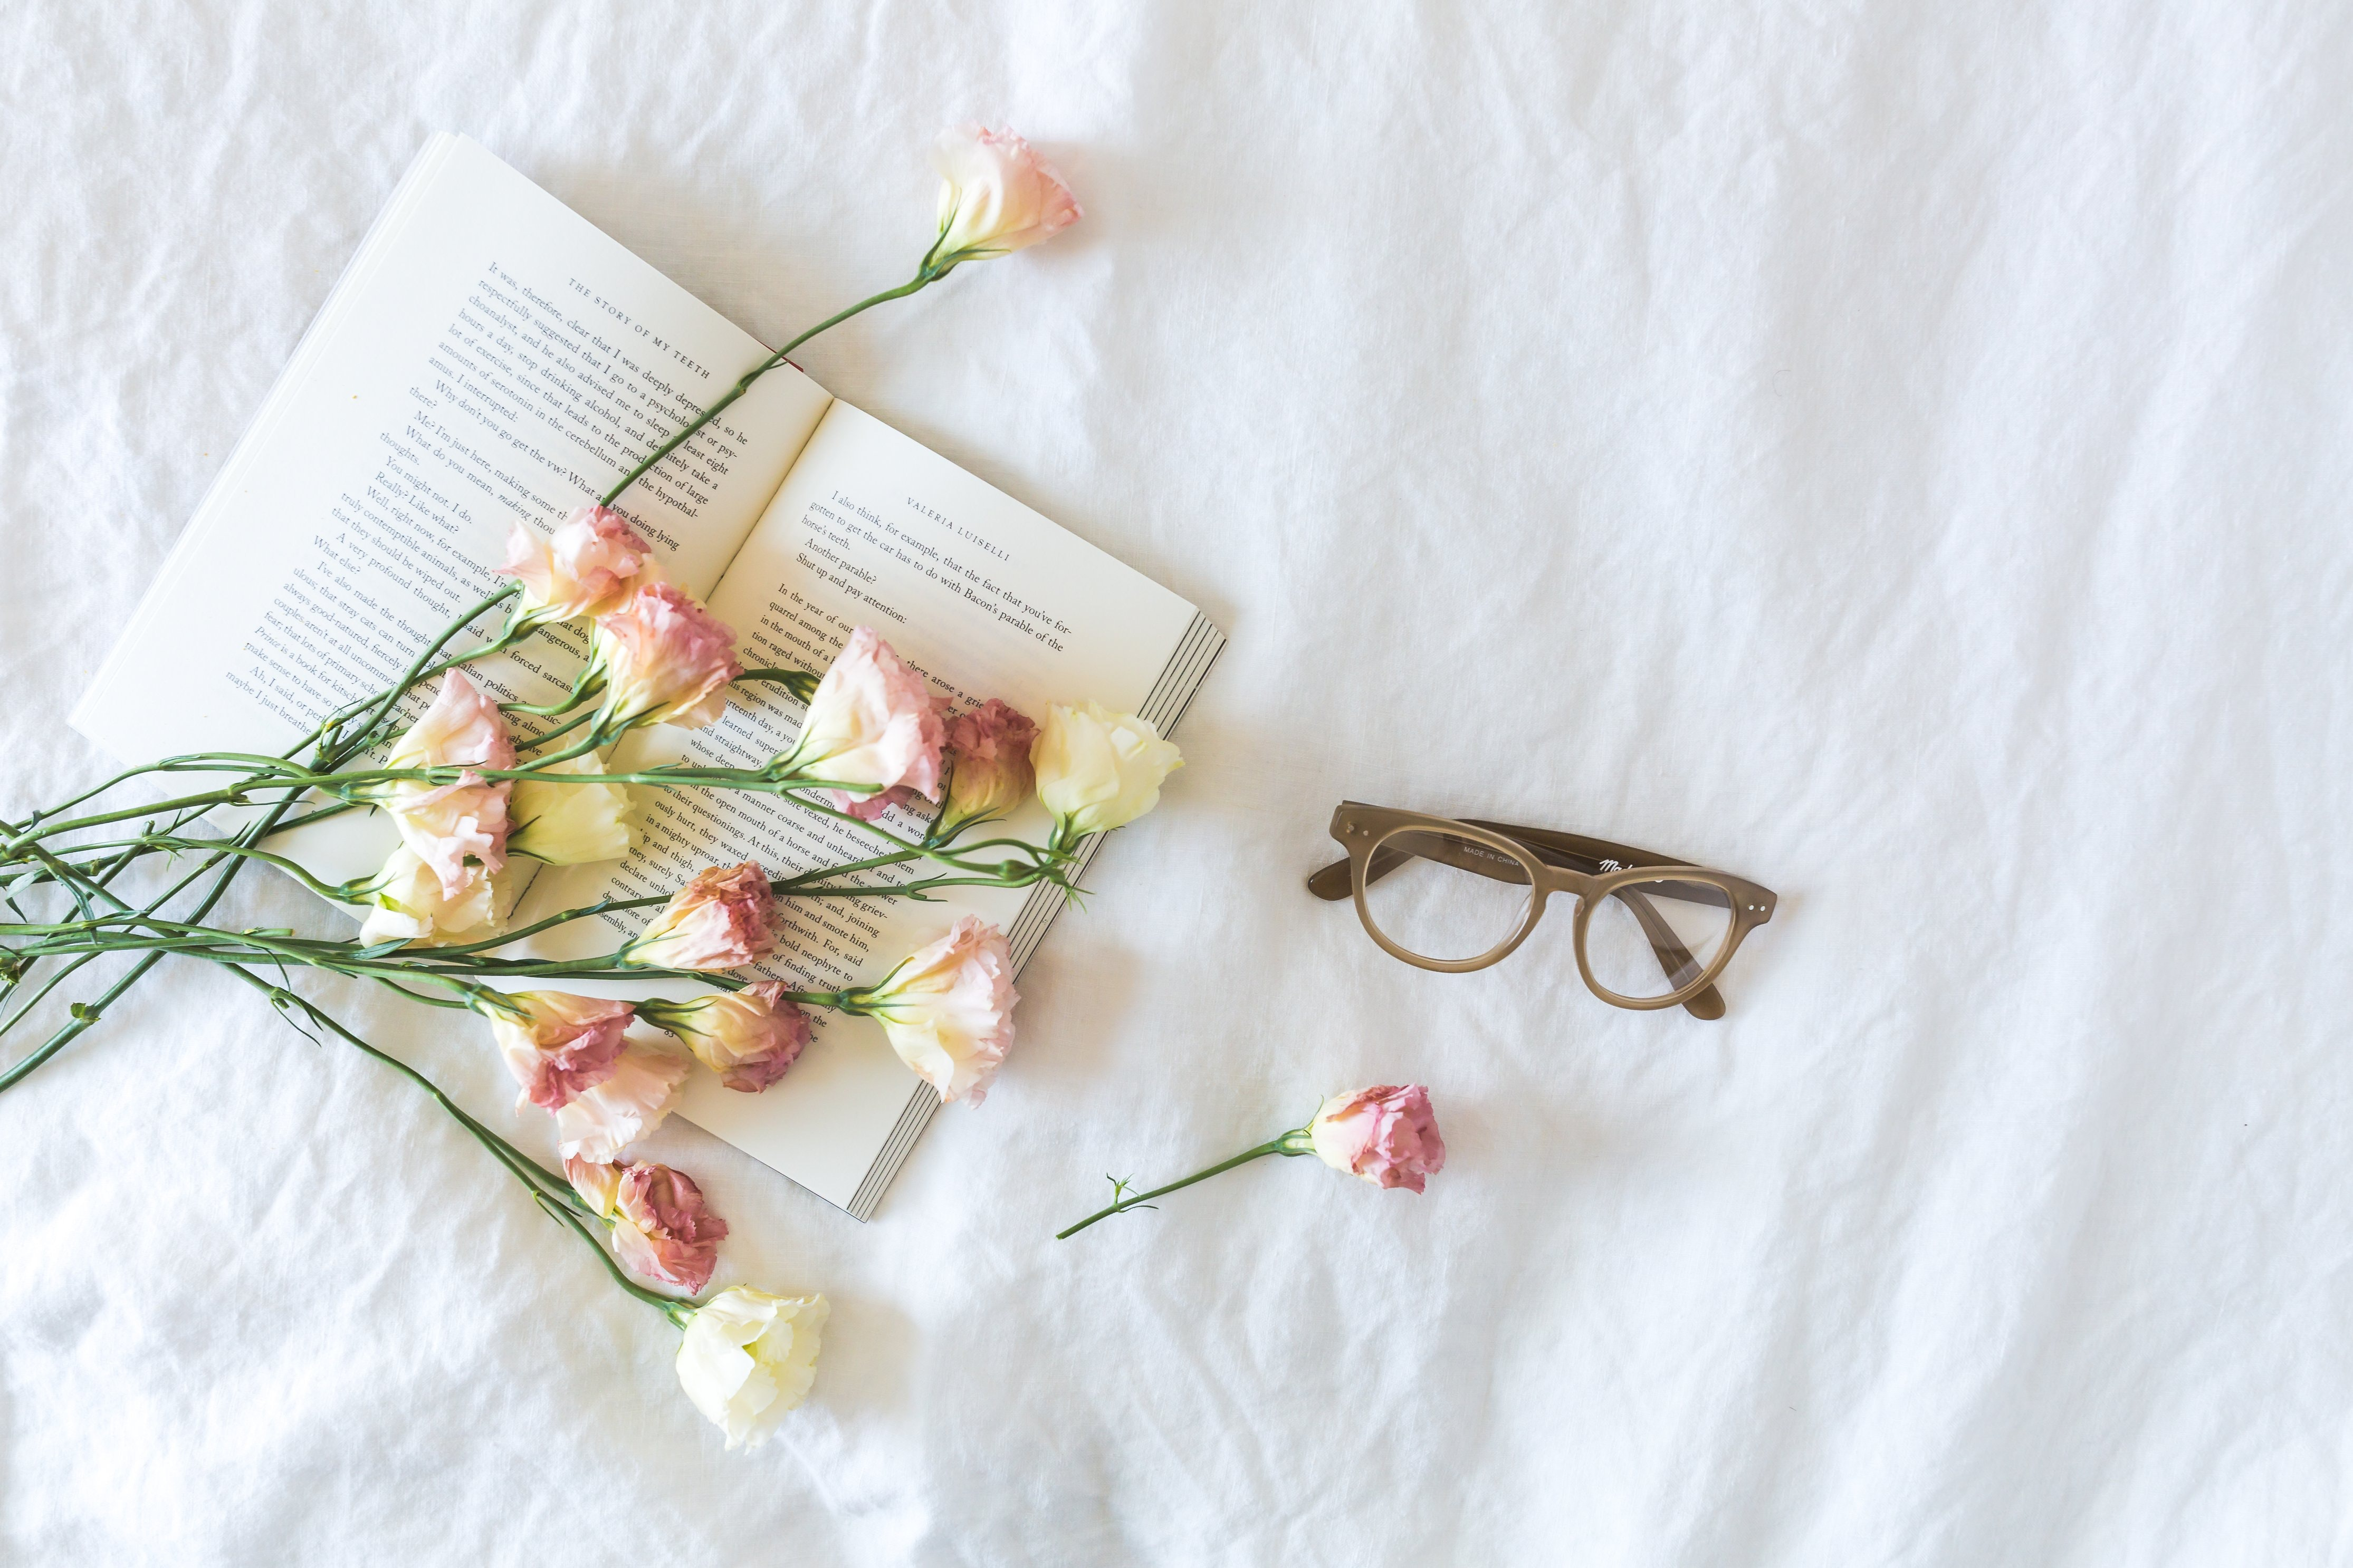 white-and-pink-flowerson-a-book-beside-eyeglasses-545042